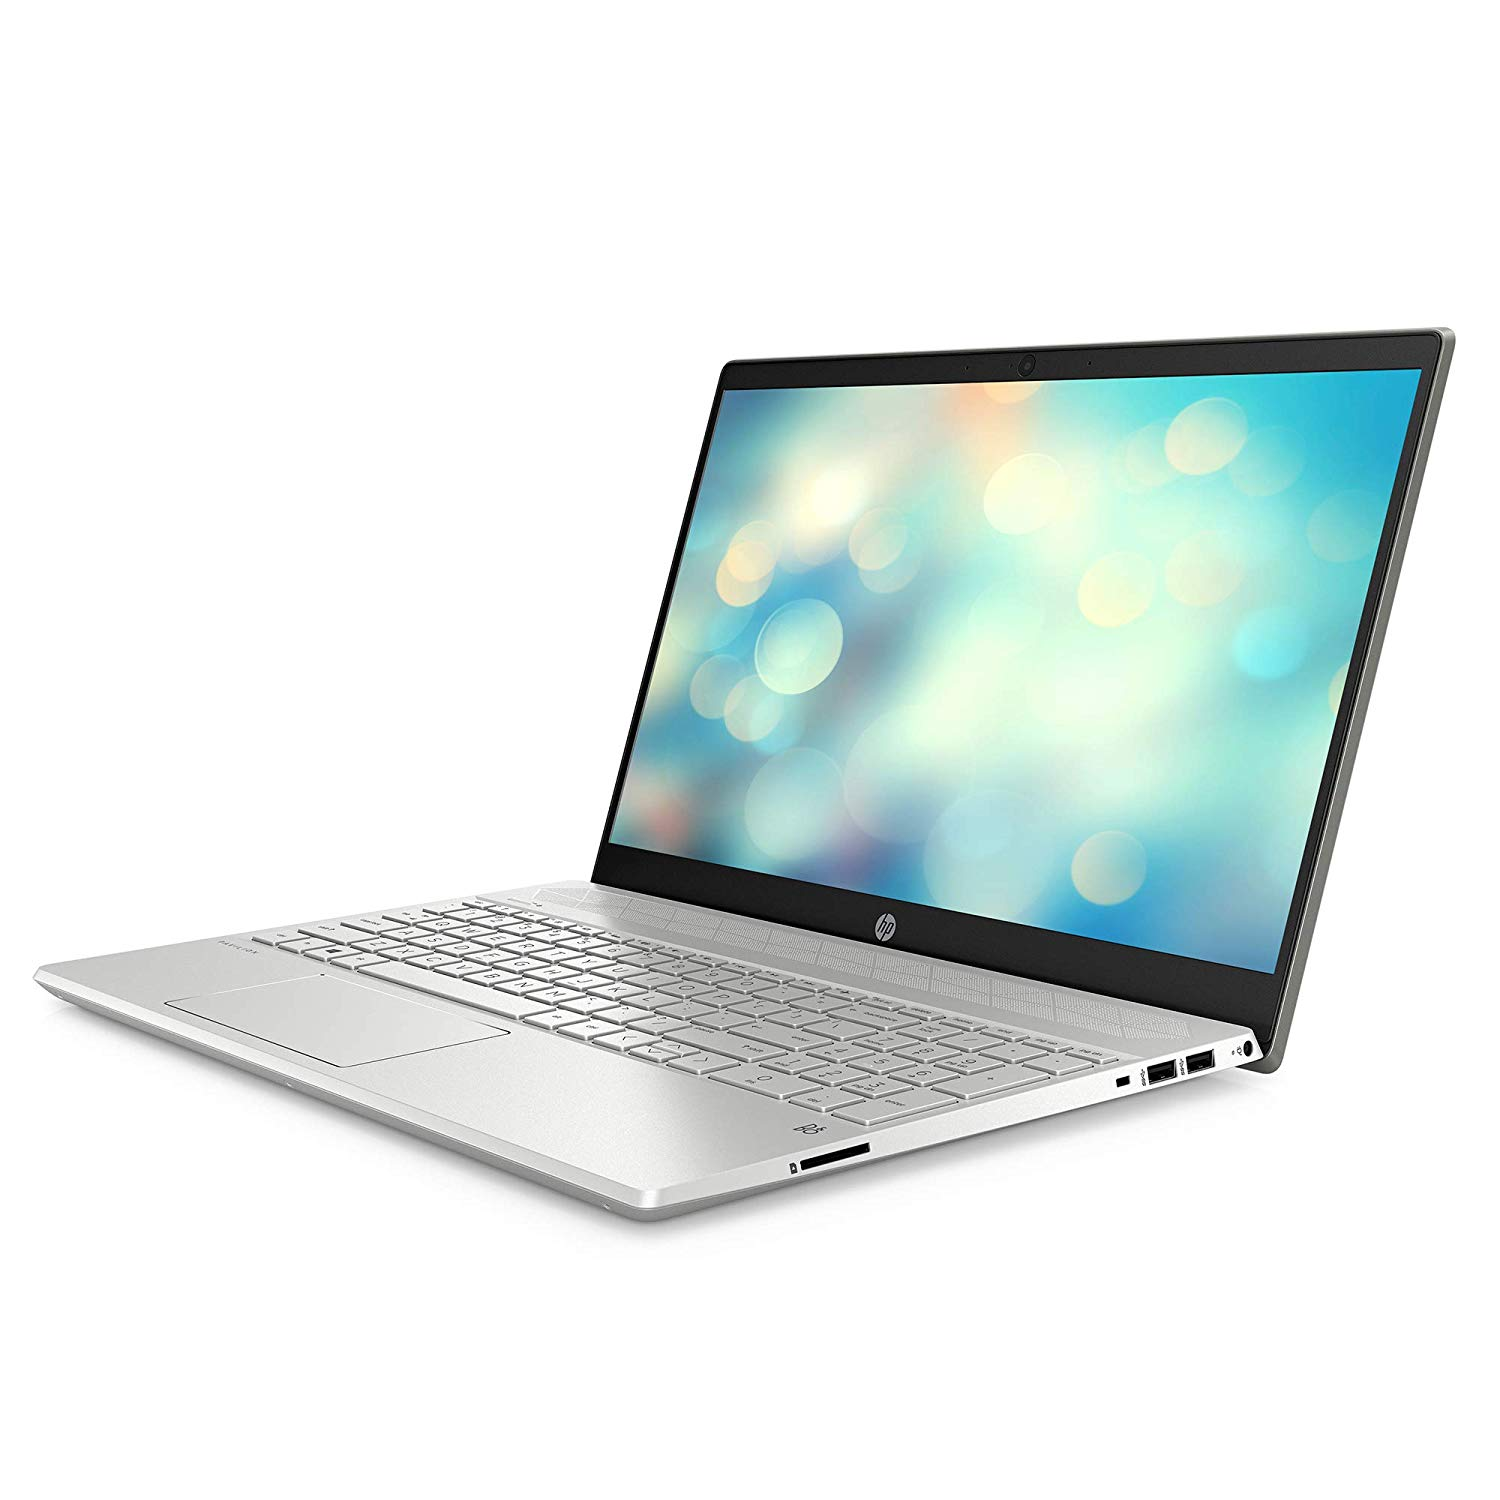 Hp Pavilion 15 Core i5-6265U | Core i7-8565U, Windows 10